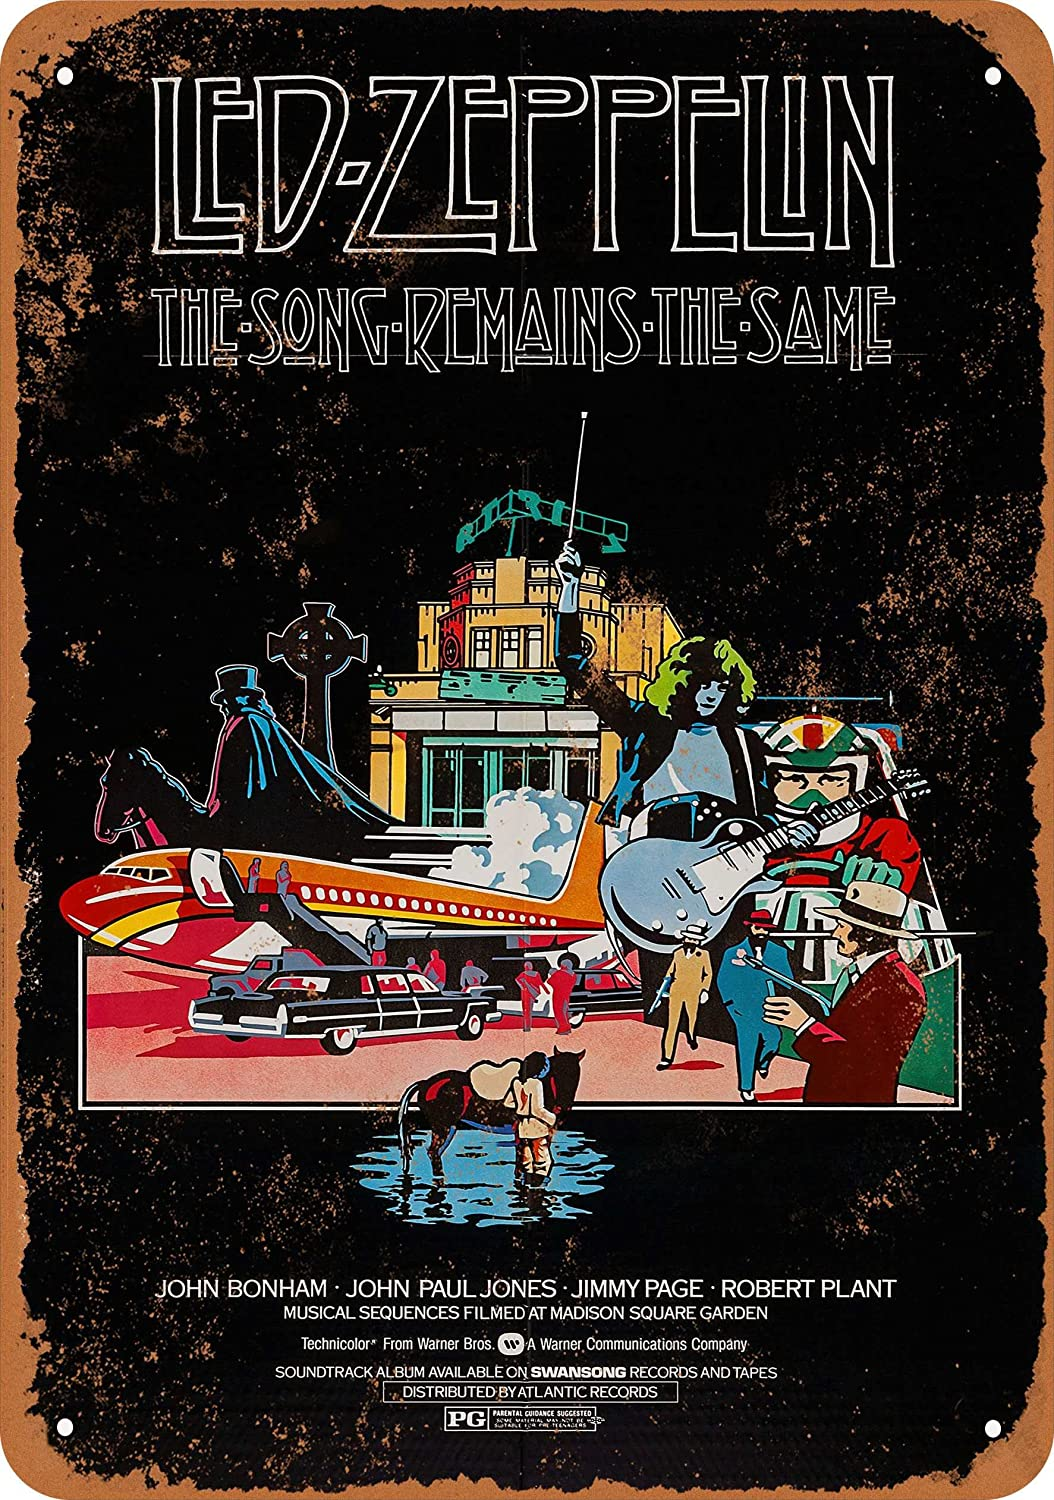 Wall-Color 10 x 14 Metal Sign - 1976 Led Zeppelin The Song Remains The Same - Vintage Look